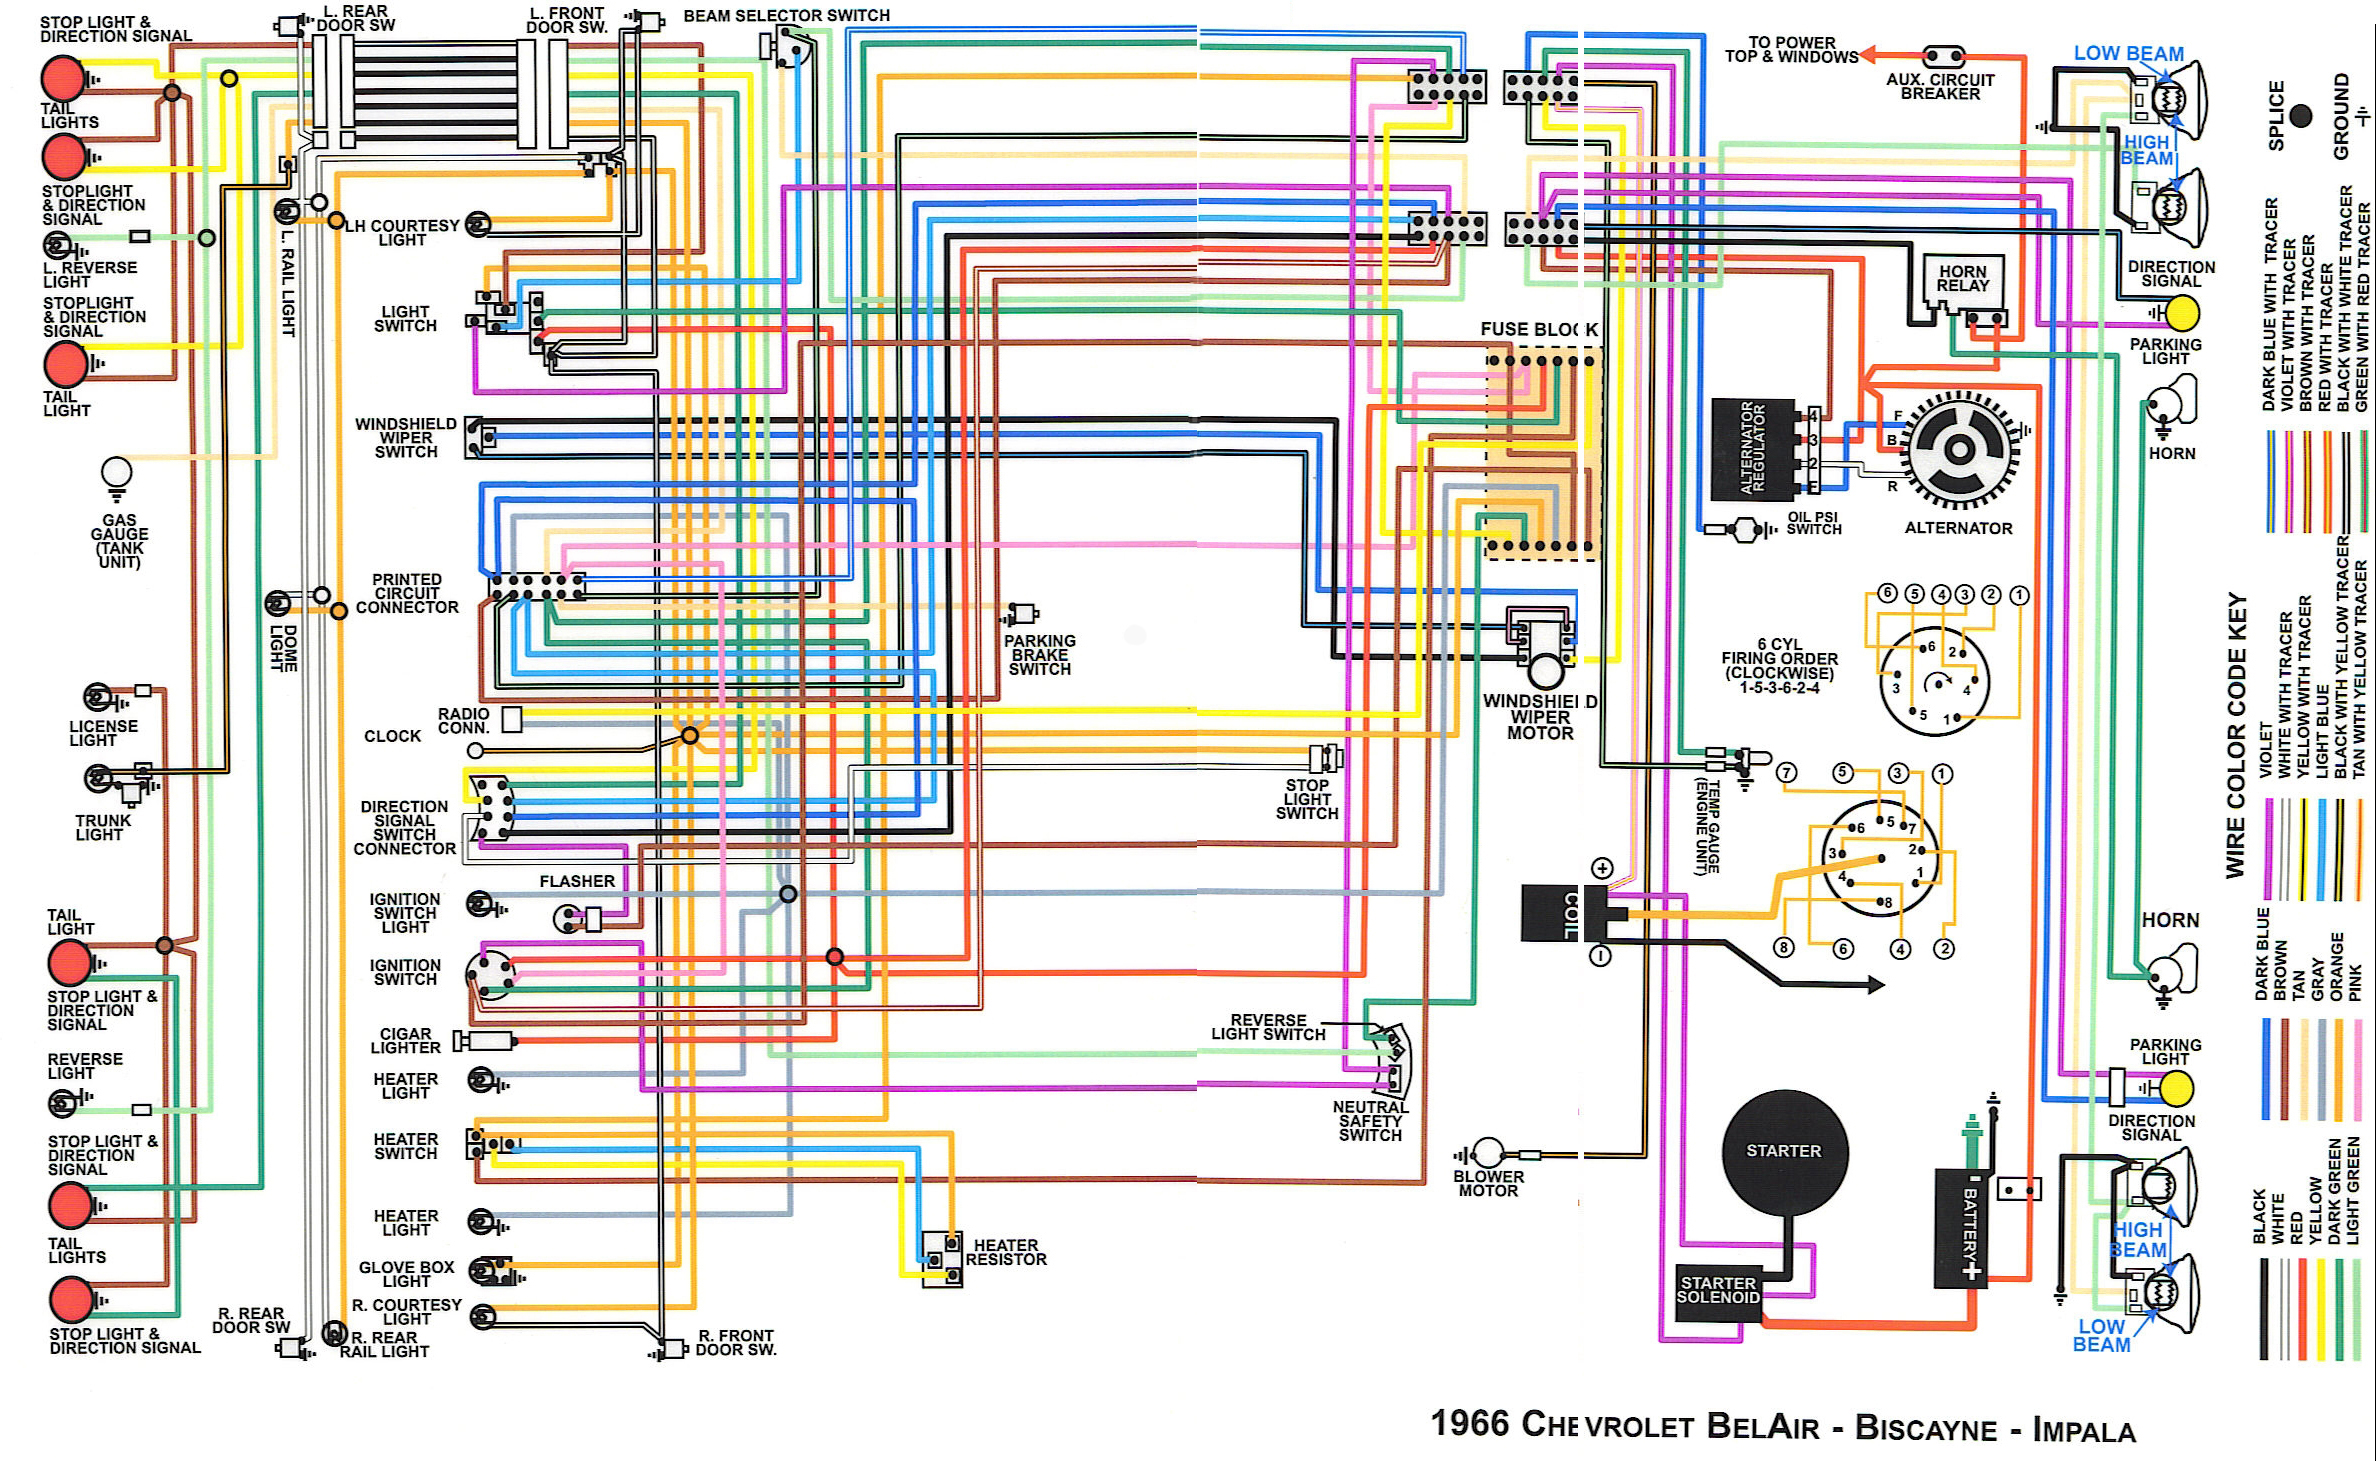 1967 camaro wiring diagram pdf index listing of wiring diagrams68 camaro wiper wiring diagram 6 smo zionsnowboards de \\u20221967 camaro wiring diagram wiring diagram